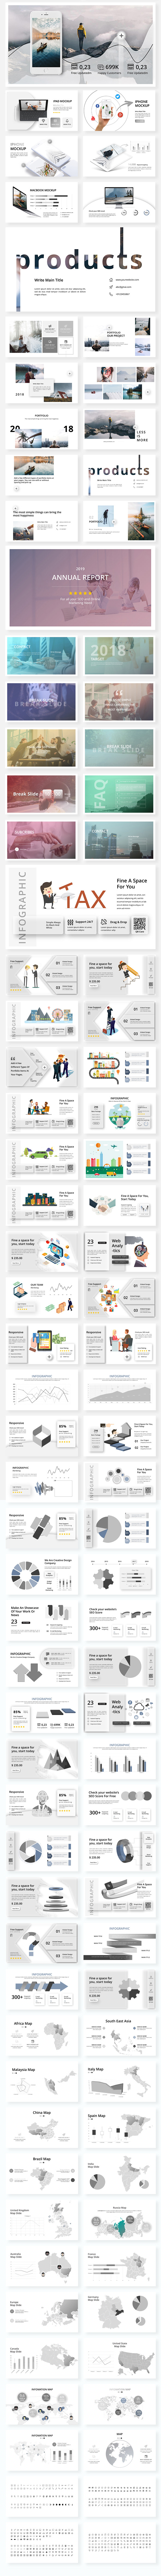 Marvel Creative & Model Powerpoint Template BIG UPDATE V2 0